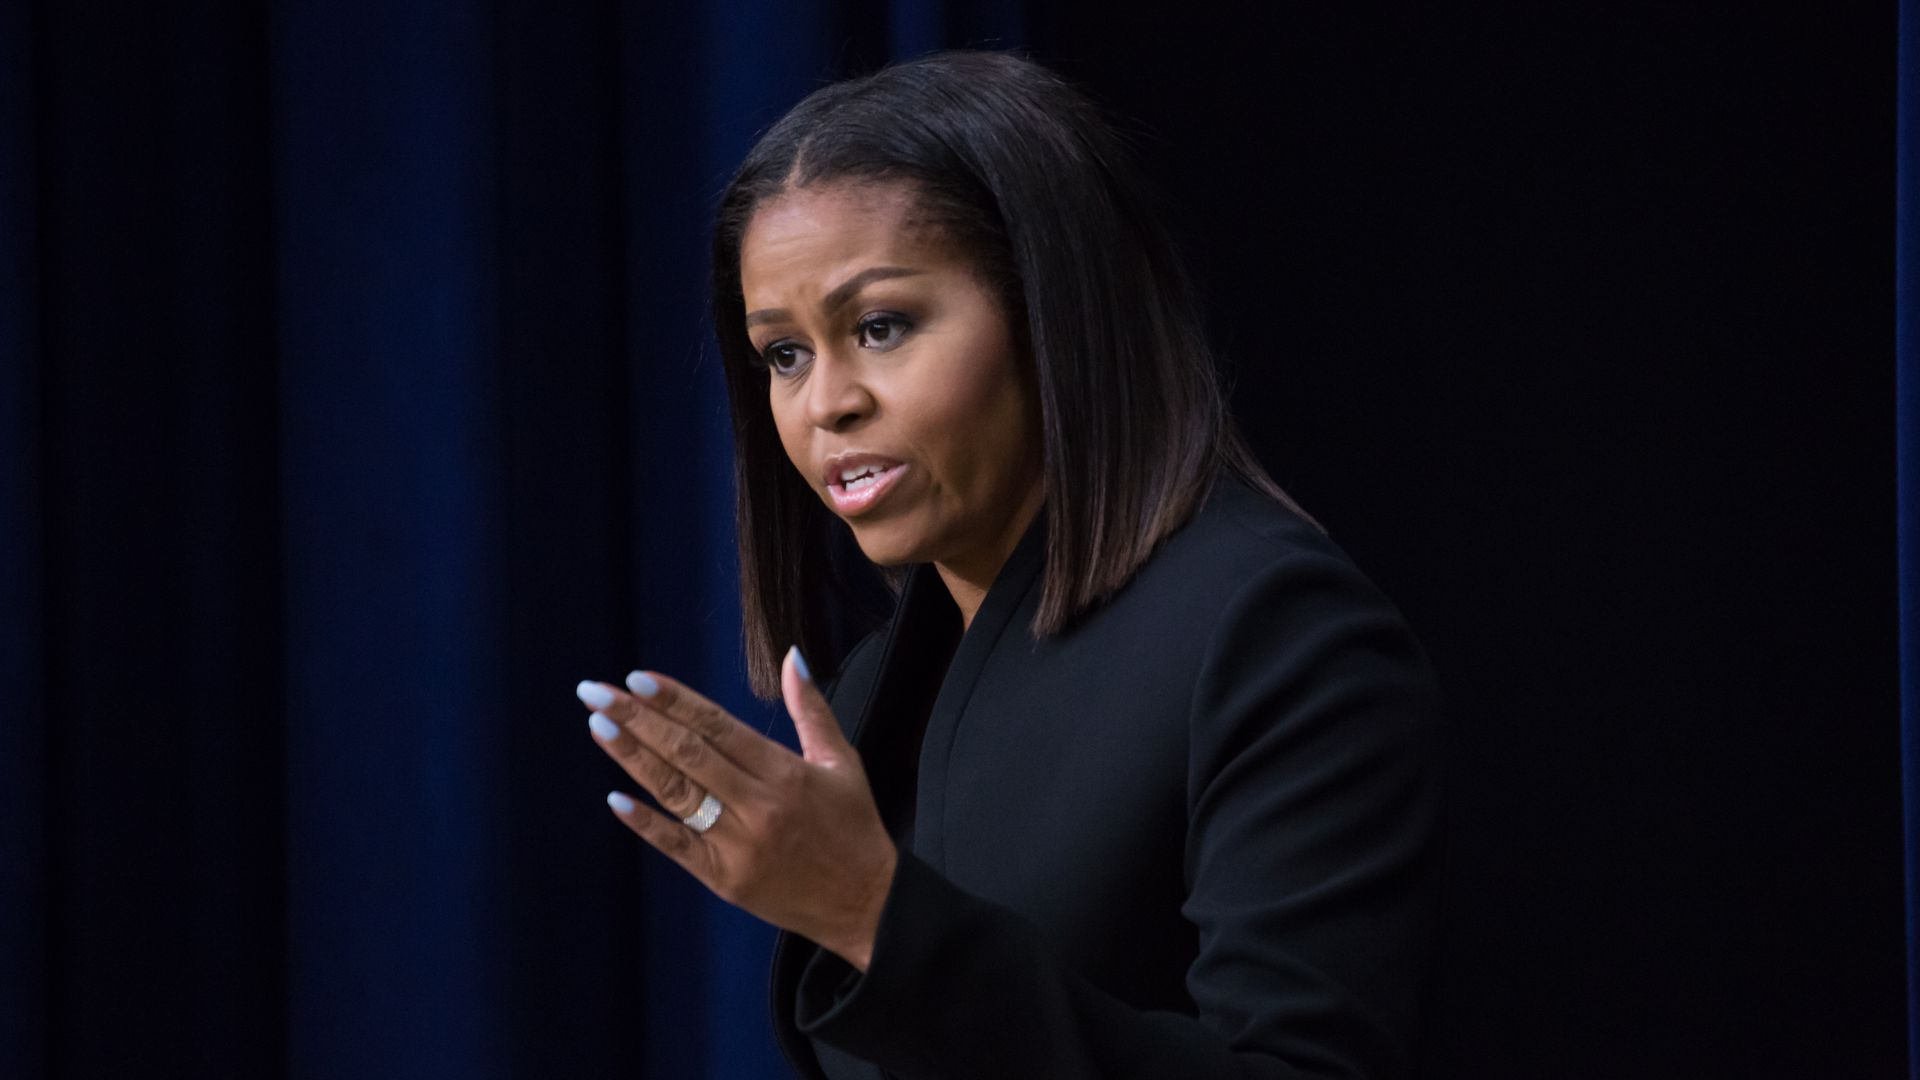 Former First Lady Michelle Obama. Photo: Cheriss May/NurPhoto via Getty Images